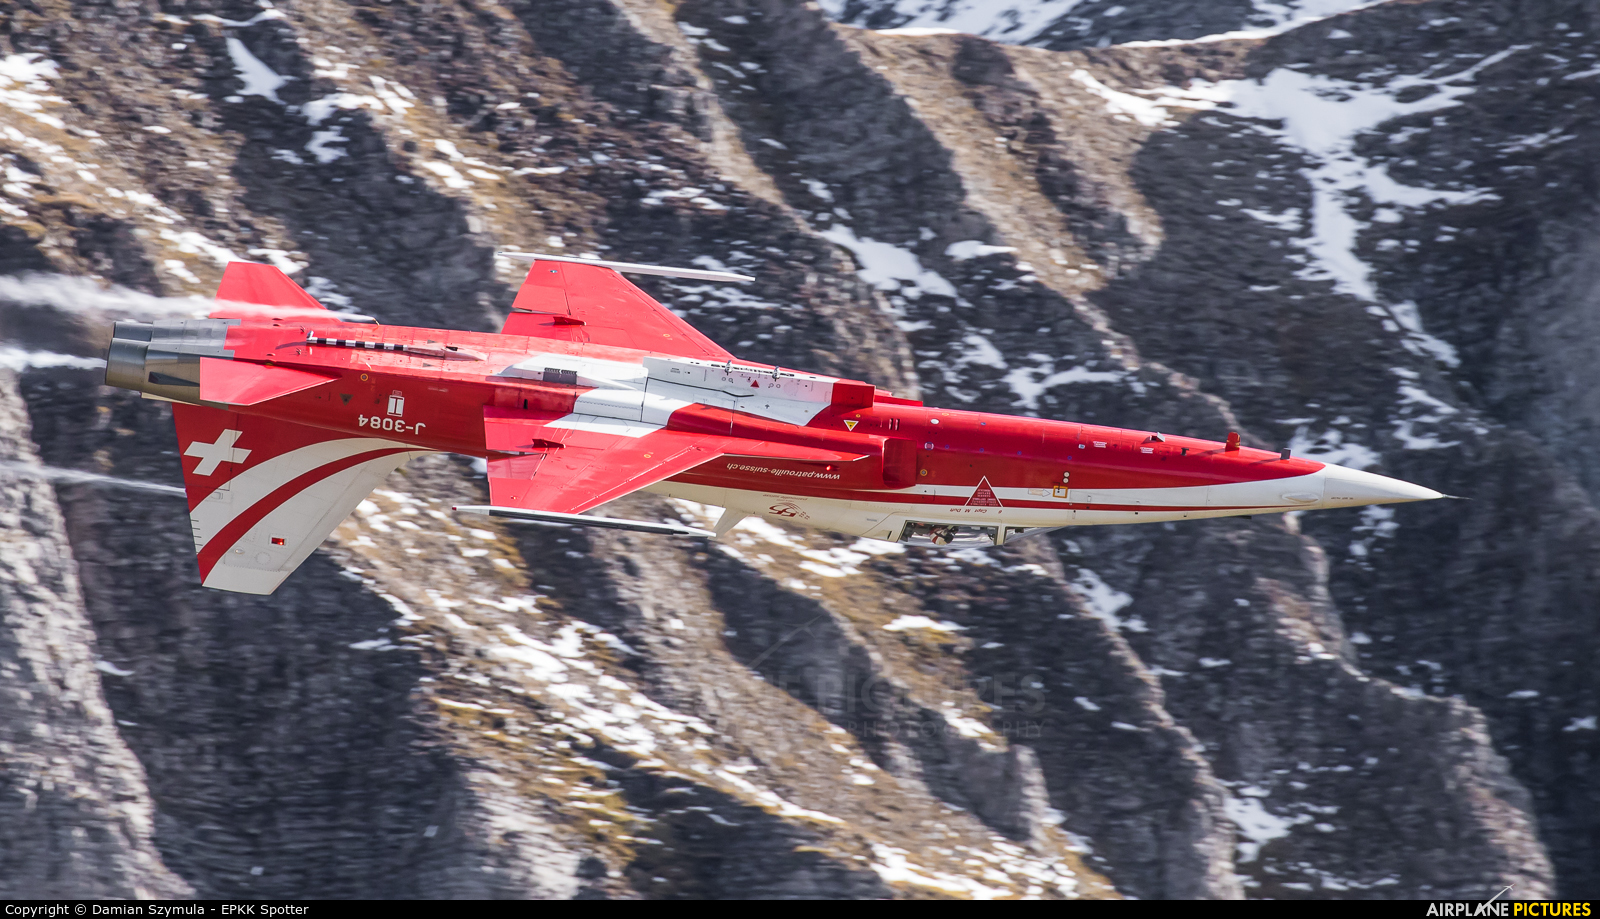 Switzerland - Air Force:  Patrouille de Suisse J-3084 aircraft at Axalp - Ebenfluh Range